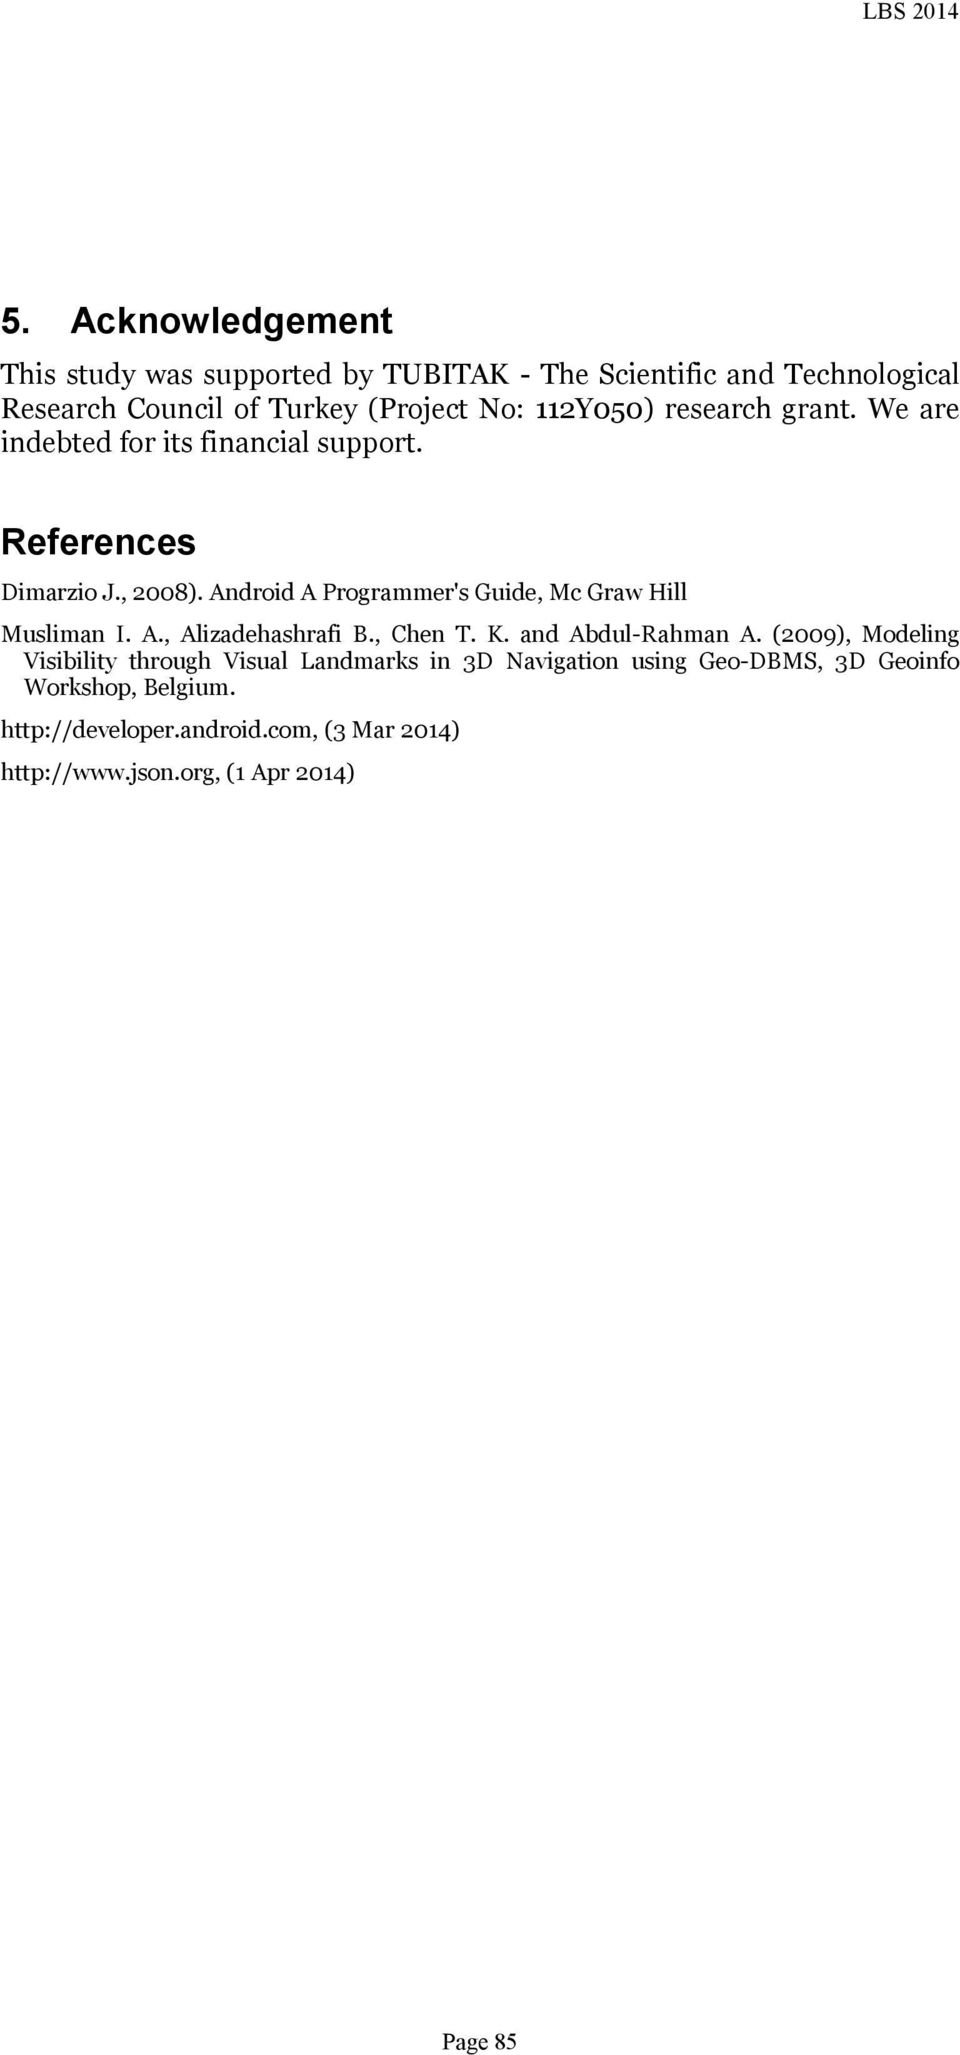 Android A Programmer's Guide, Mc Graw Hill Musliman I. A., Alizadehashrafi B., Chen T. K. and Abdul-Rahman A.